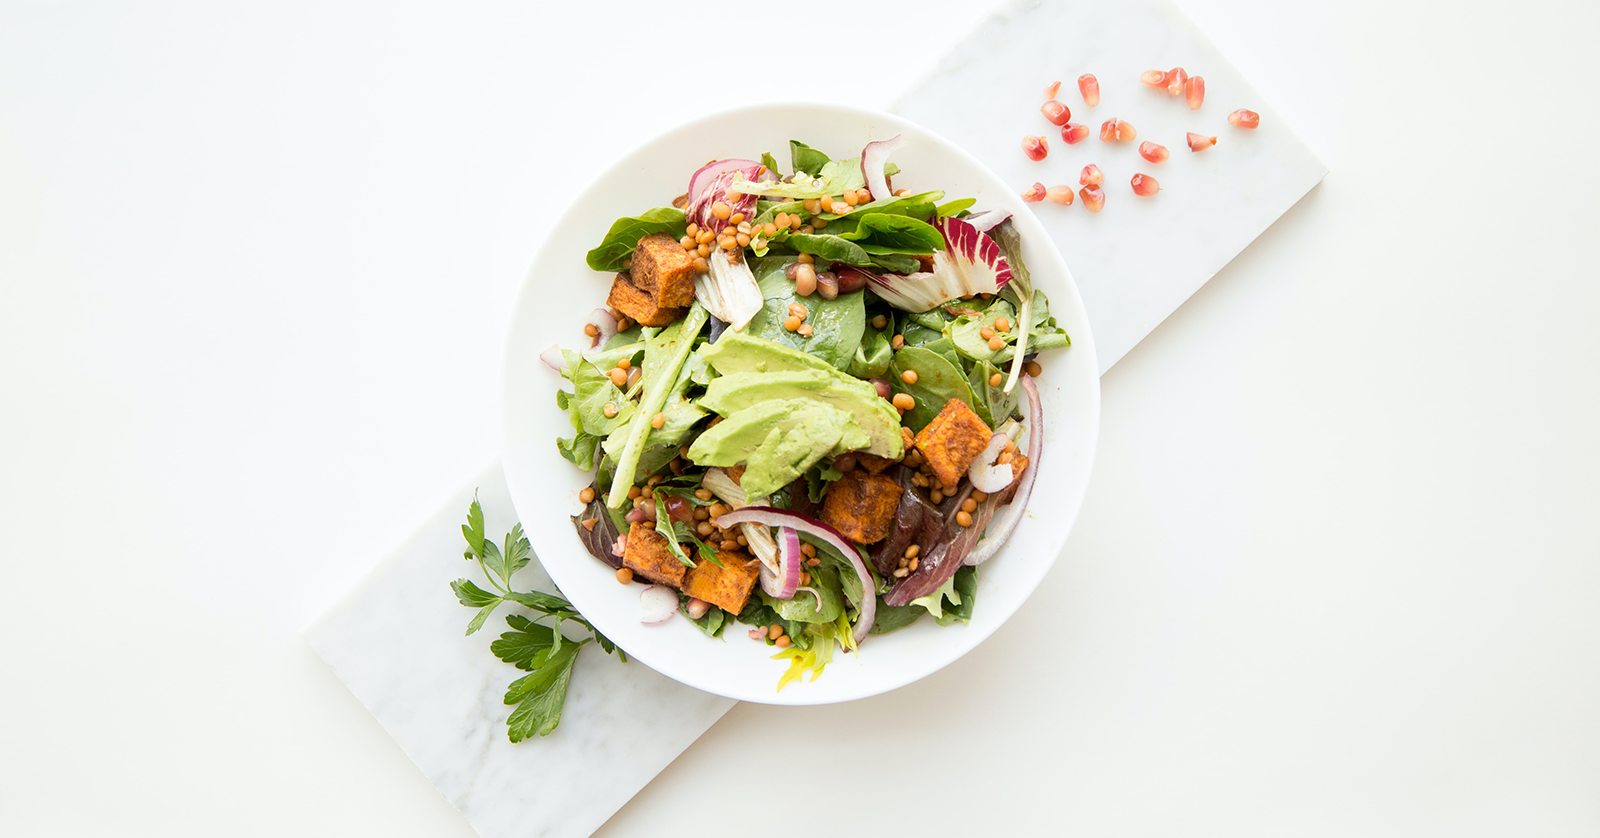 Bird's eye view of a healthy salad